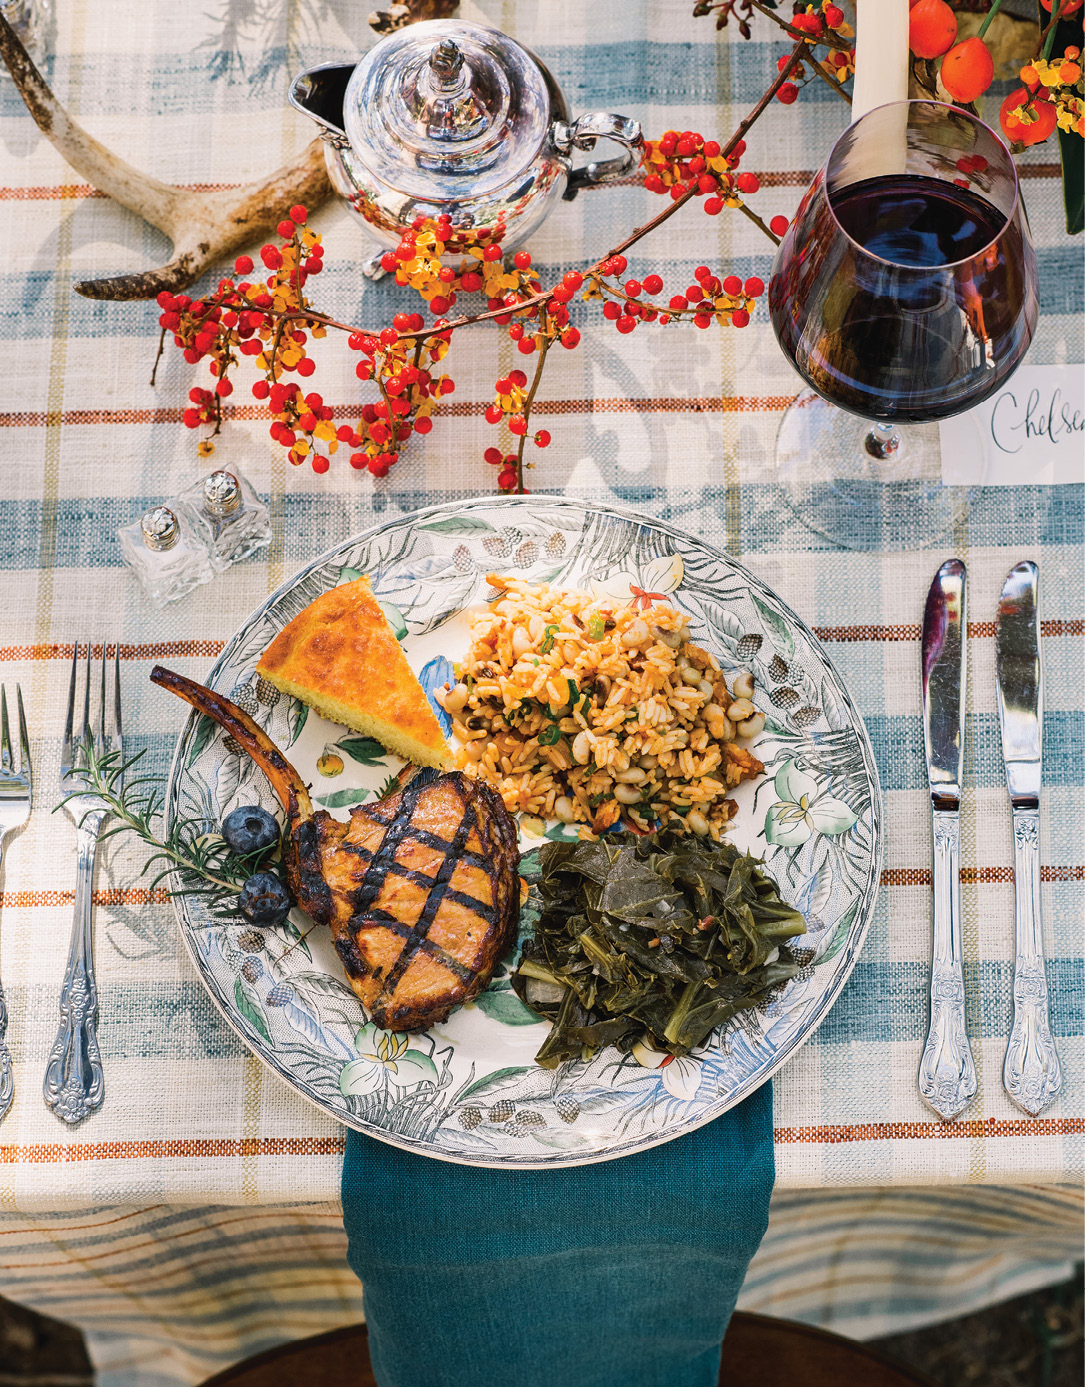 Each household sits at their own table with the sides they made served family-style. The host wore a mask and gloves to grill pork chops for all.